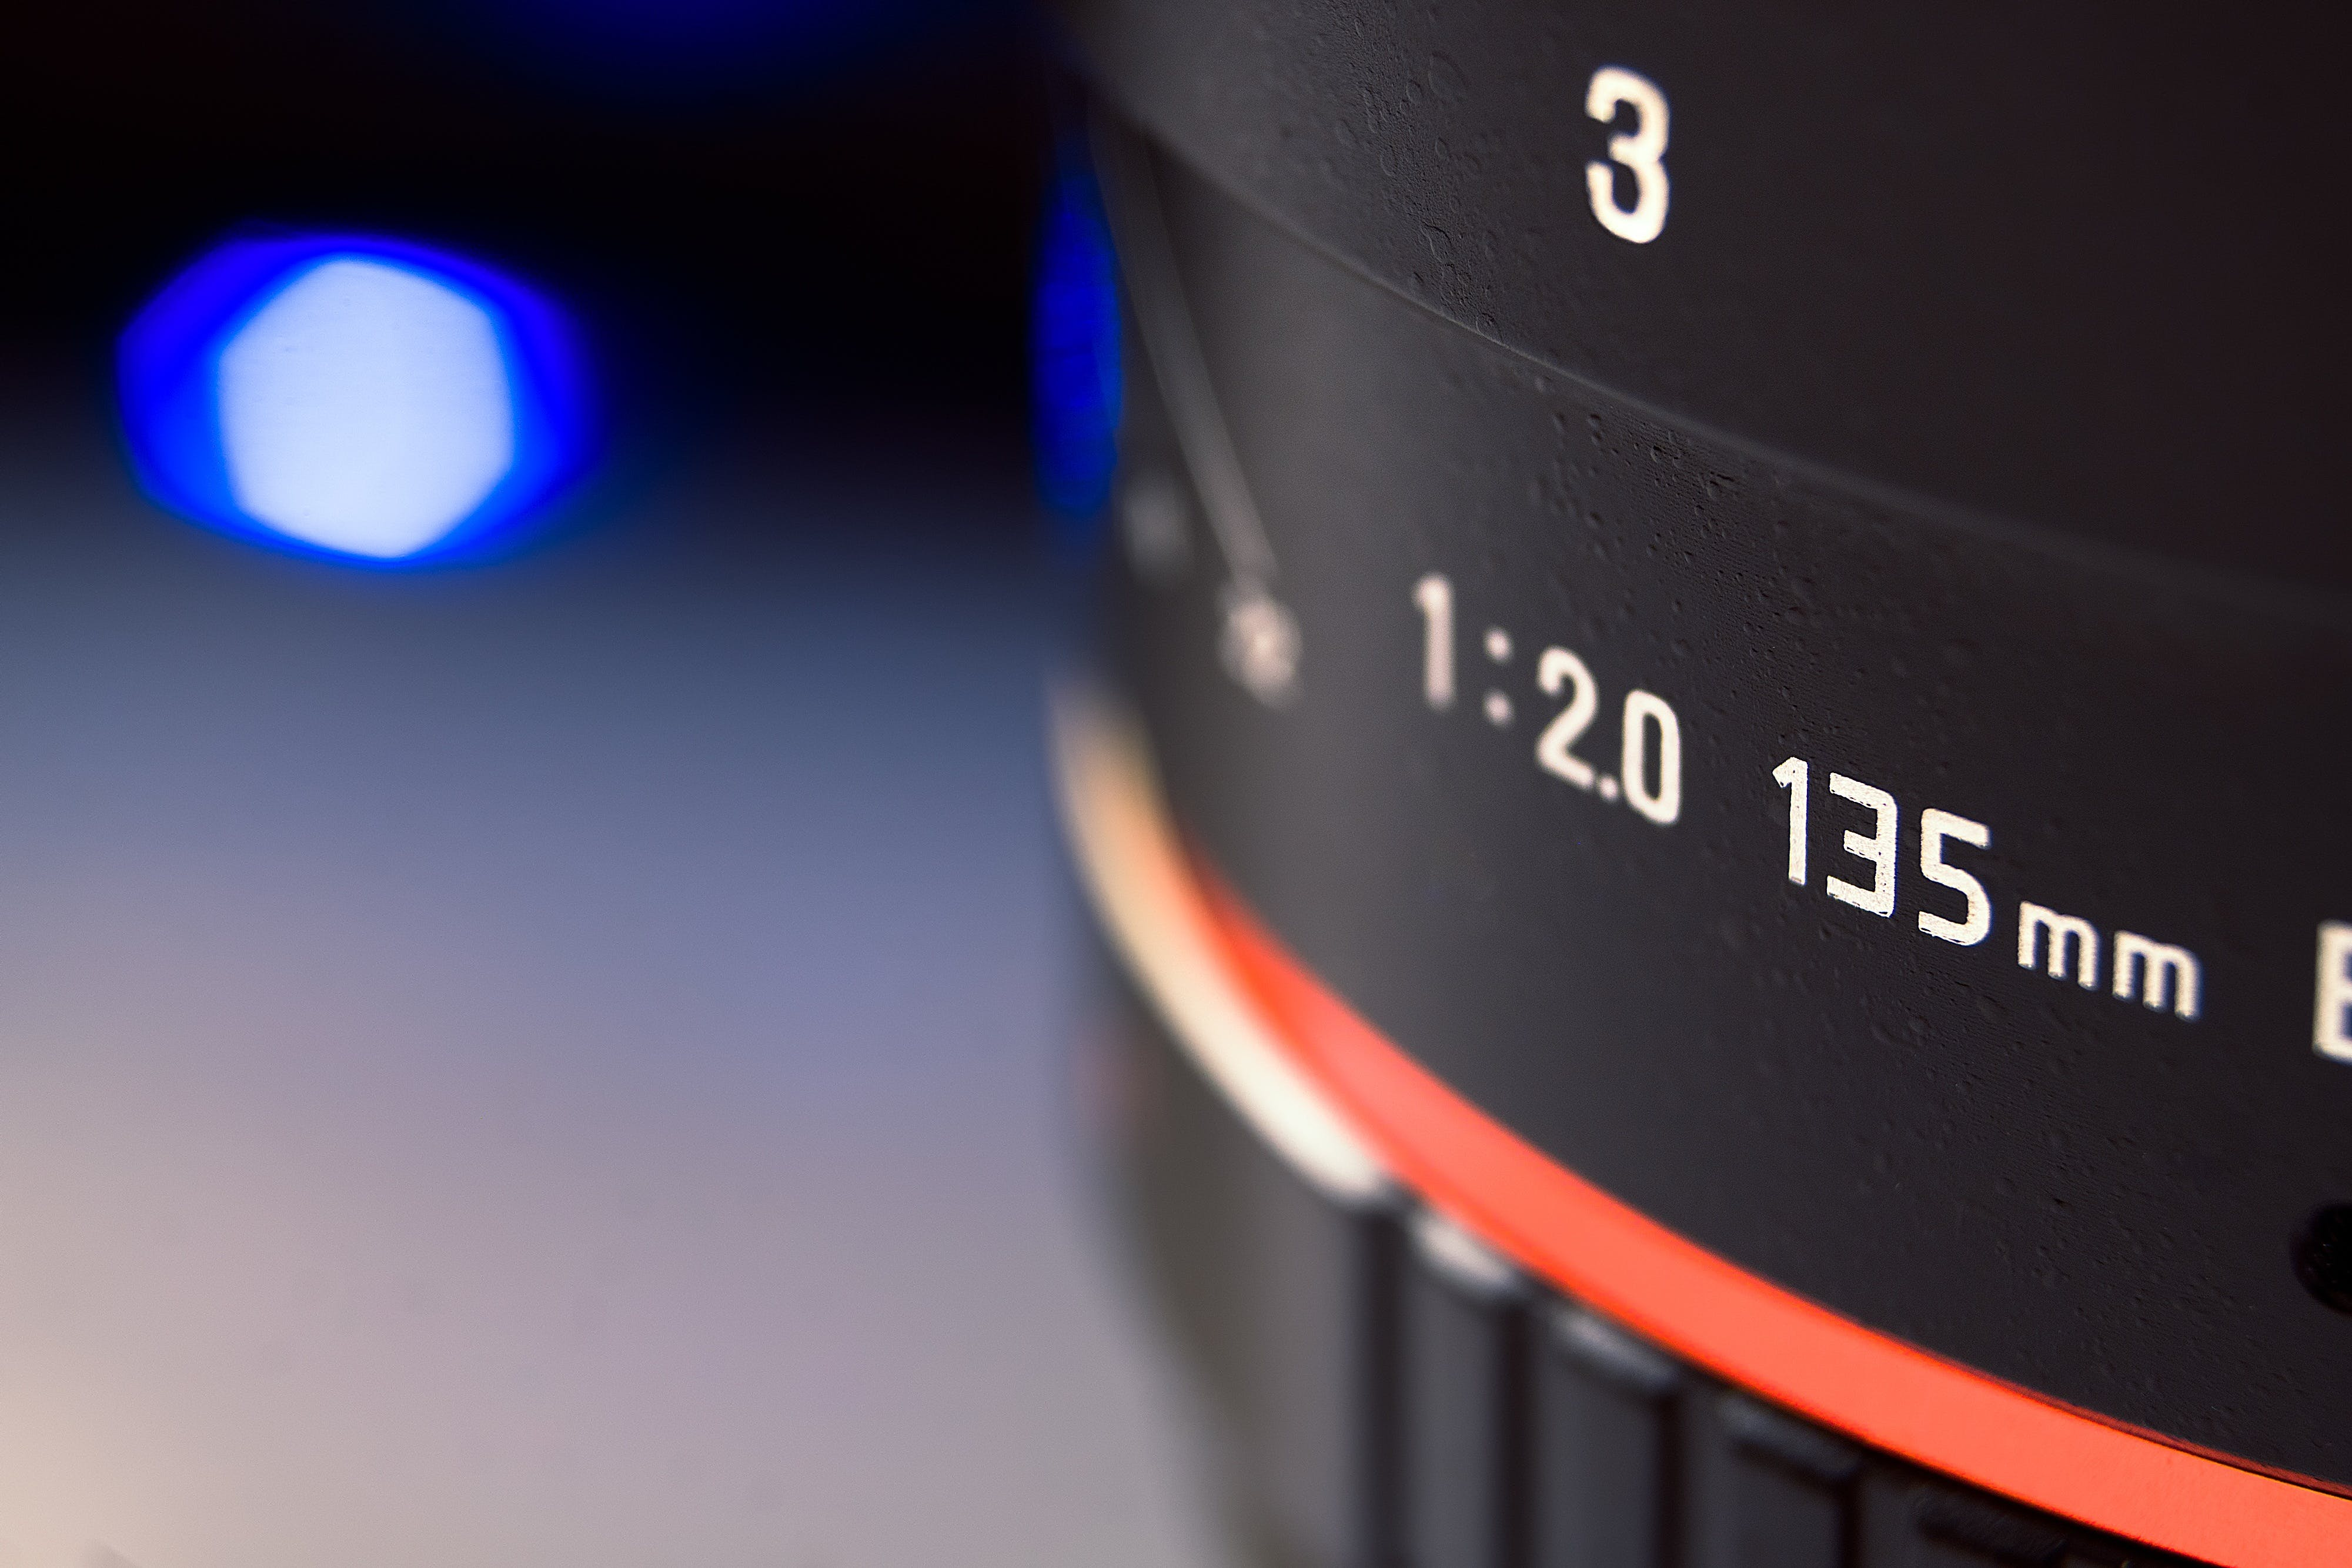 Shallow Focus Photography of Black 135 Mm Camera Lens